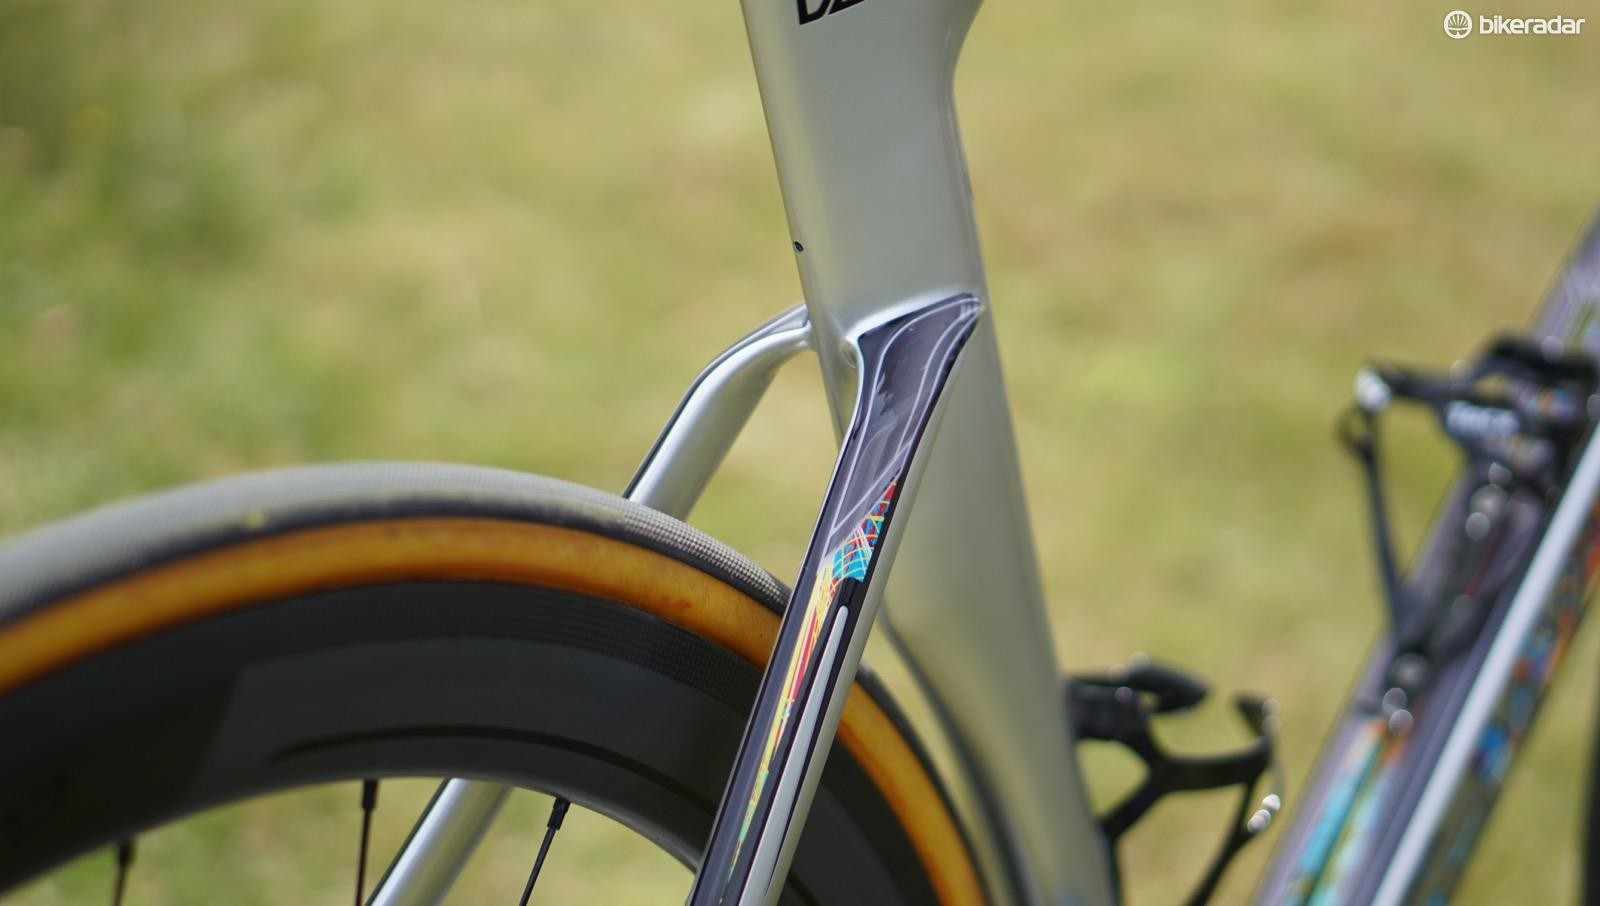 The original Venge was created as a disc bike, but then Specialized led with the rim-brake version as delays with pro racing put the Venge Disc on hold